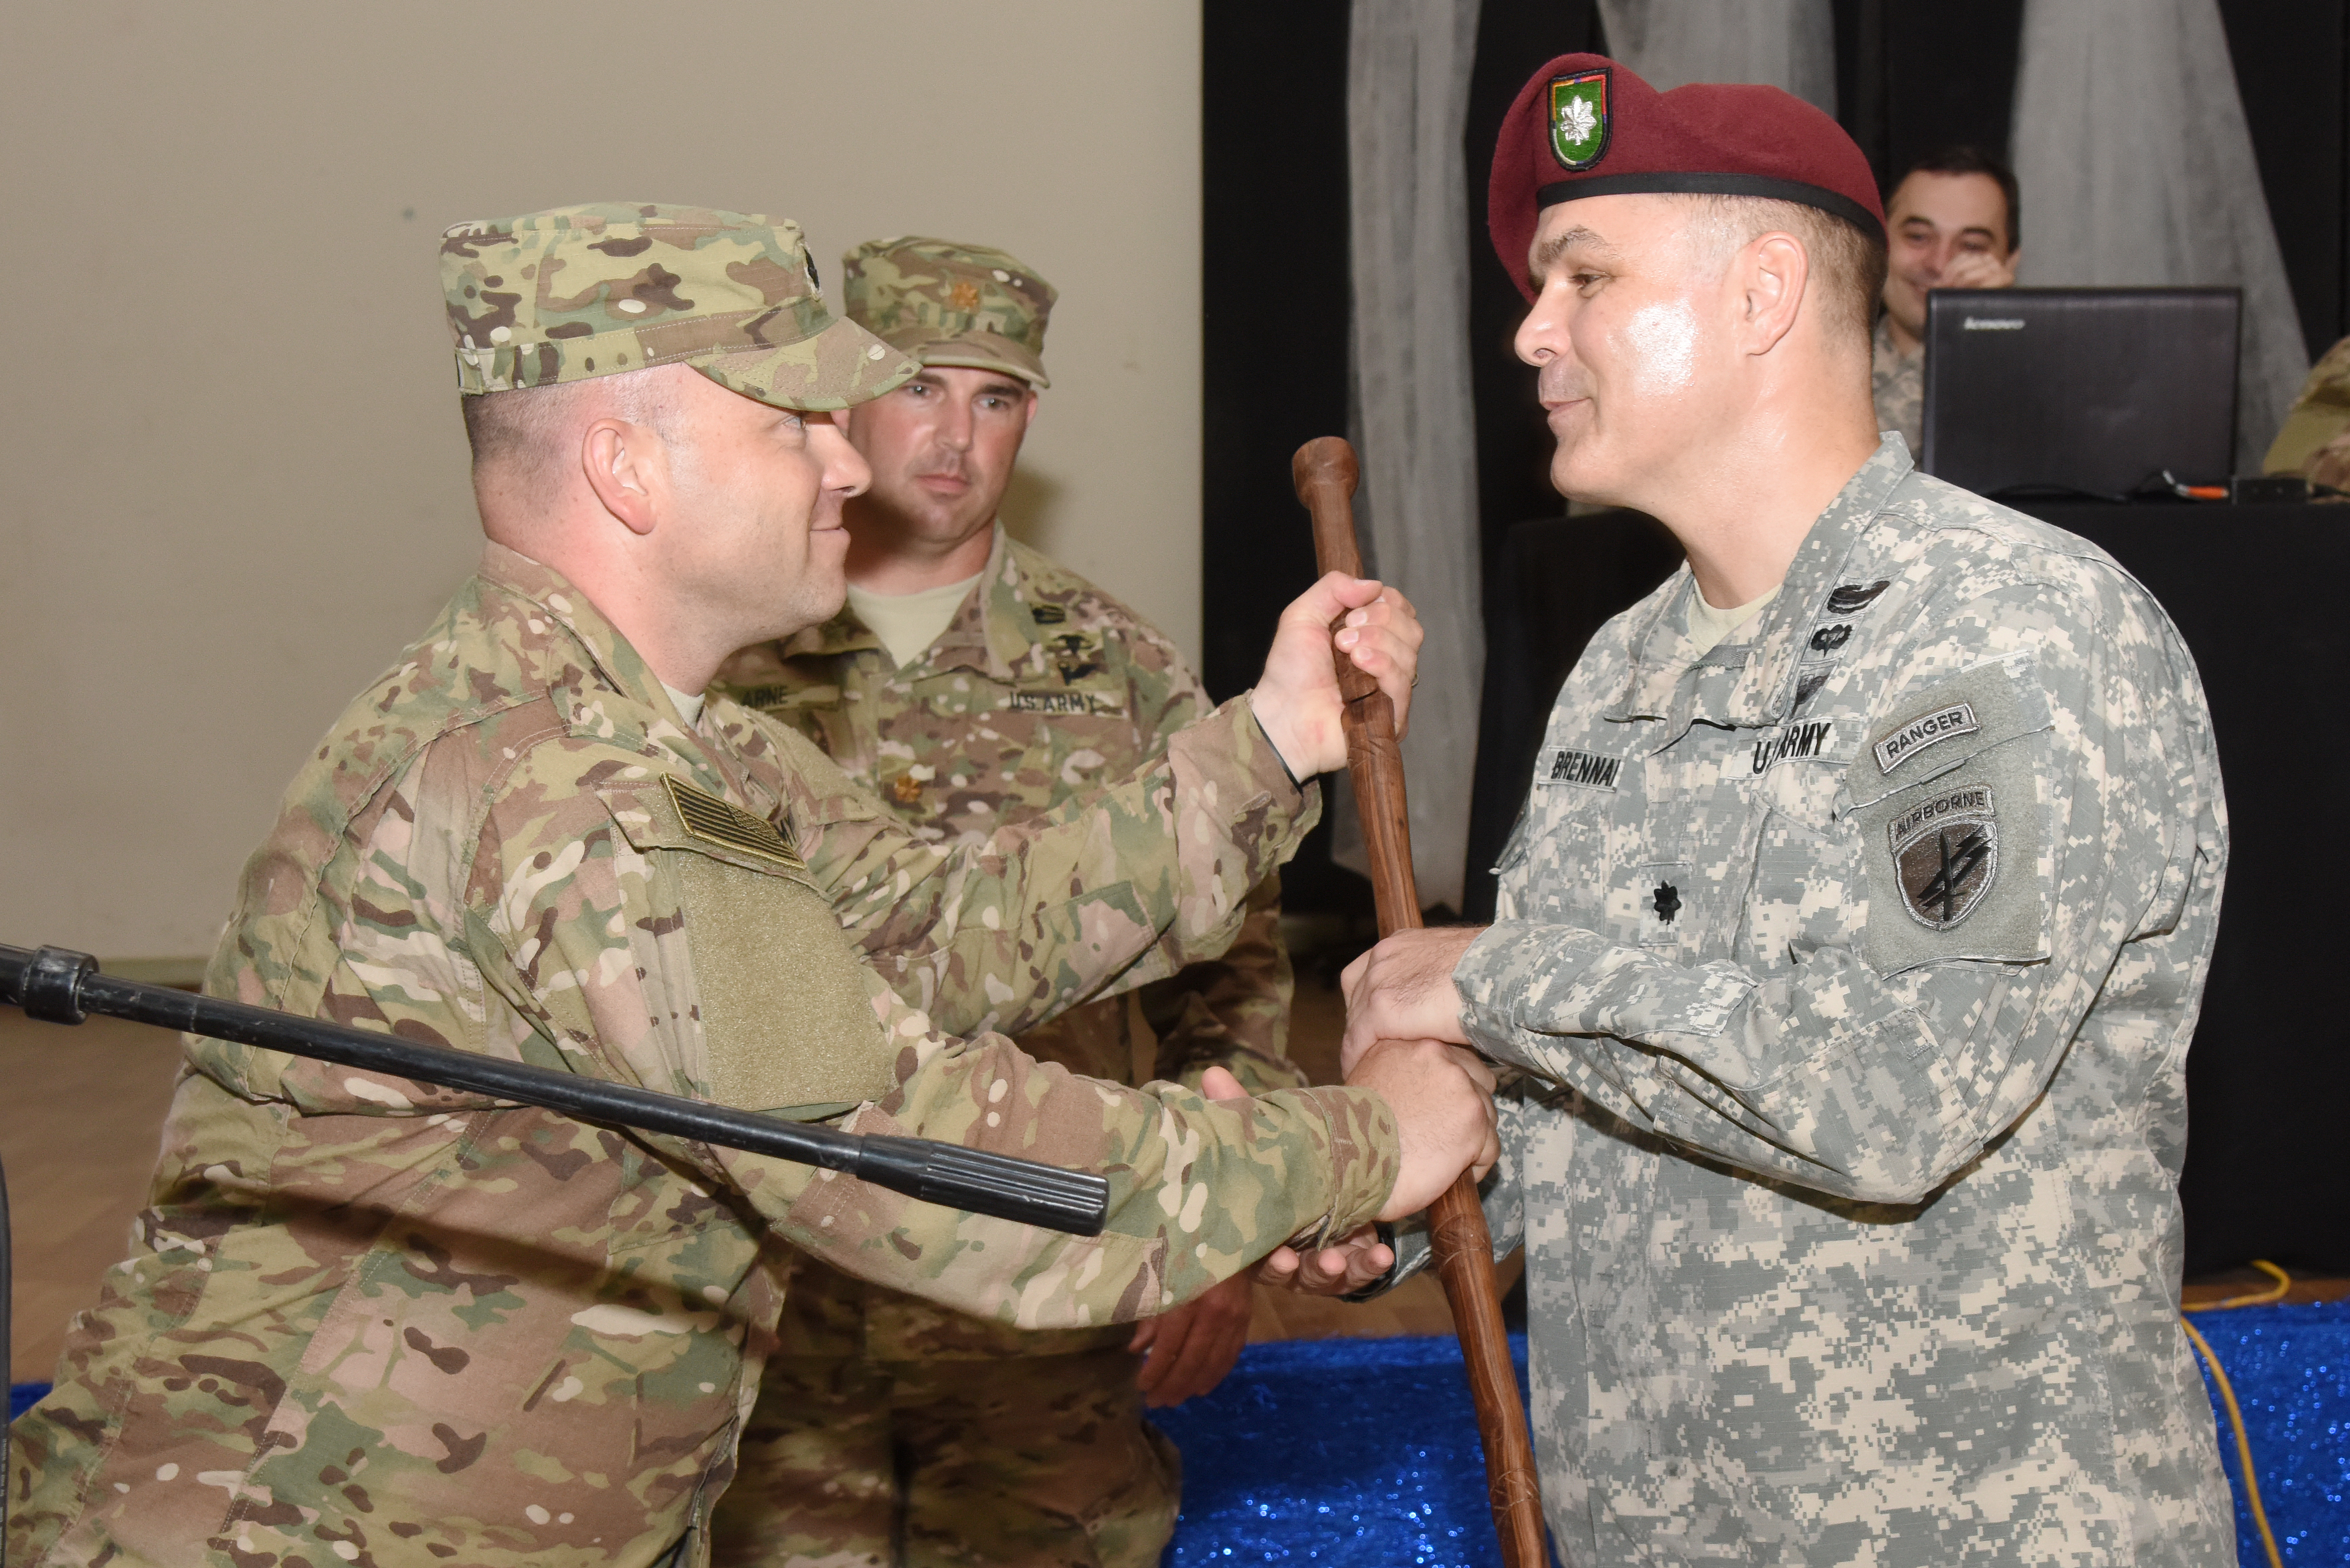 U.S. Army Lt. Col. Gerry Dolan, 415th Civil Affairs Battalion commander, gives a gift to U.S. Army Lt. Col. Timothy Brennan, former Army Civil Affairs Battalion commander, during a transfer of authority ceremony June 22, 2015, in Djibouti.  The 404th CAB soldiers will return to Joint Base McGuire-Dix-Lakehurst, N.J. (U.S. Air Force photo by Staff Sgt. Maria Bowman)